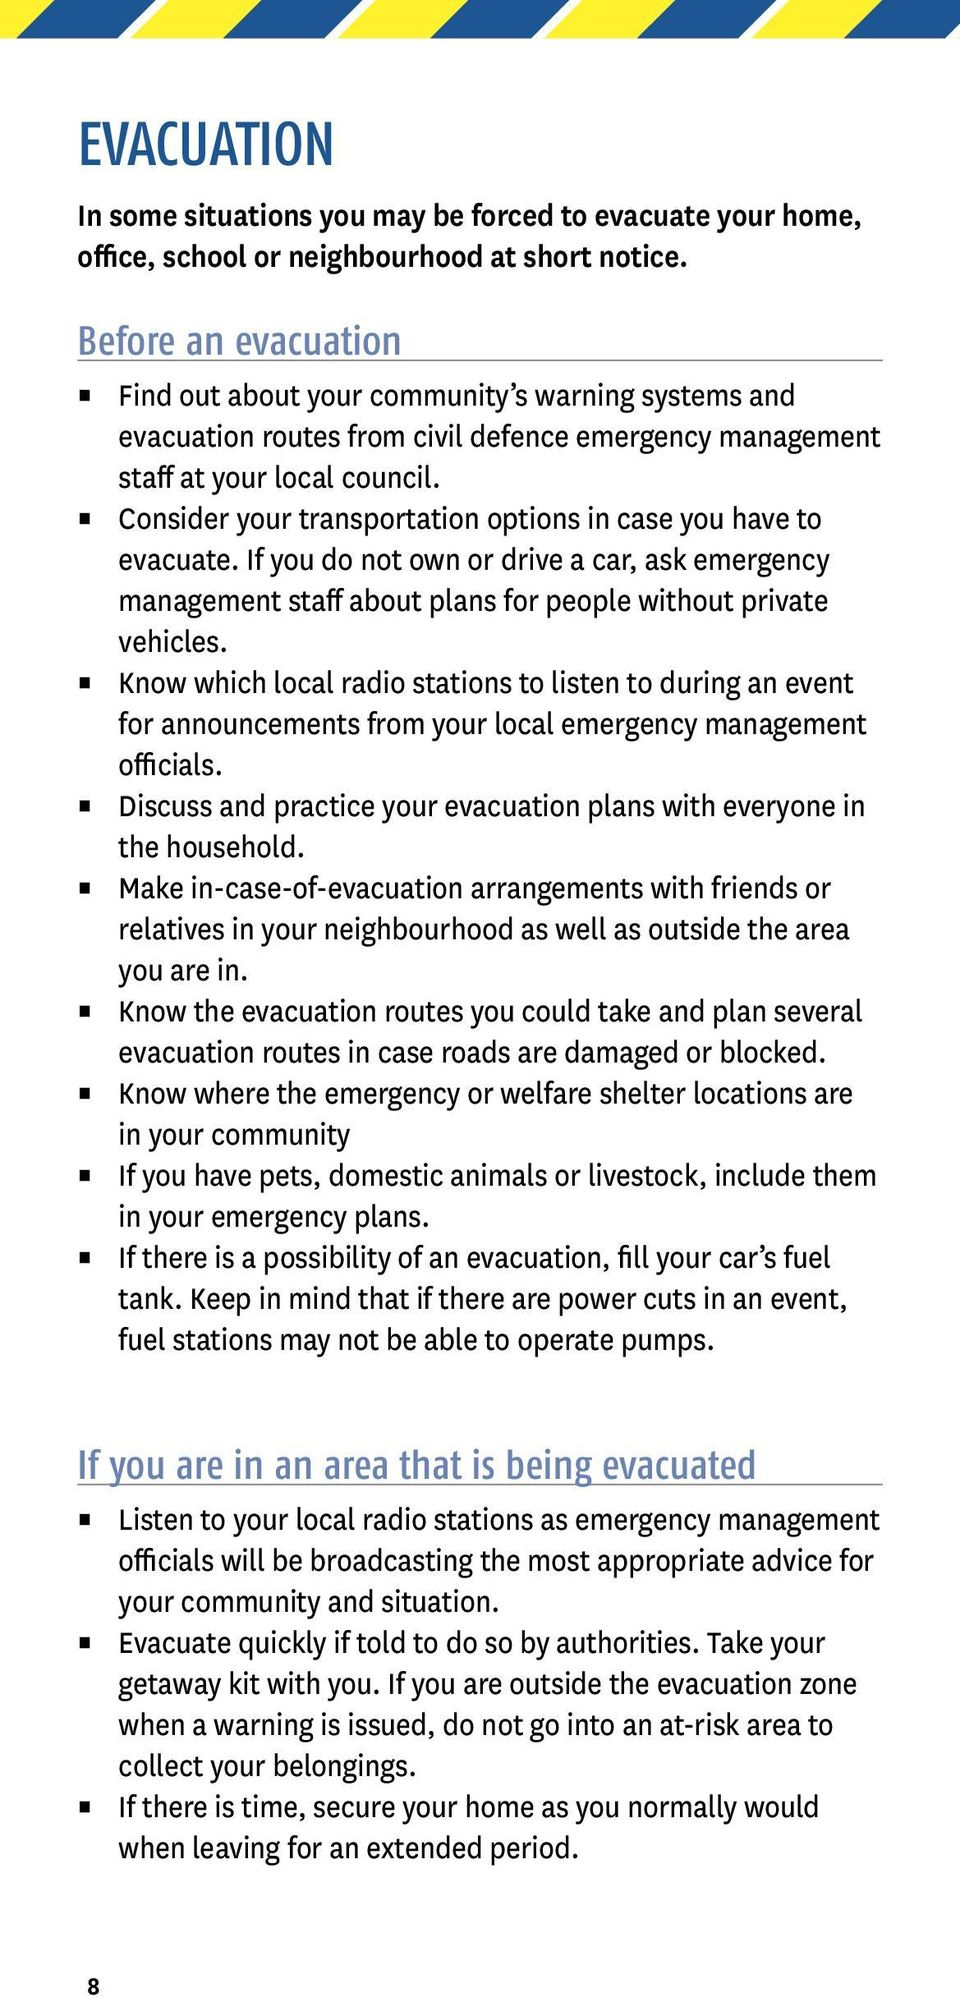 Consider your transportation options in case you have to evacuate. If you do not own or drive a car, ask emergency management staff about plans for people without private vehicles.